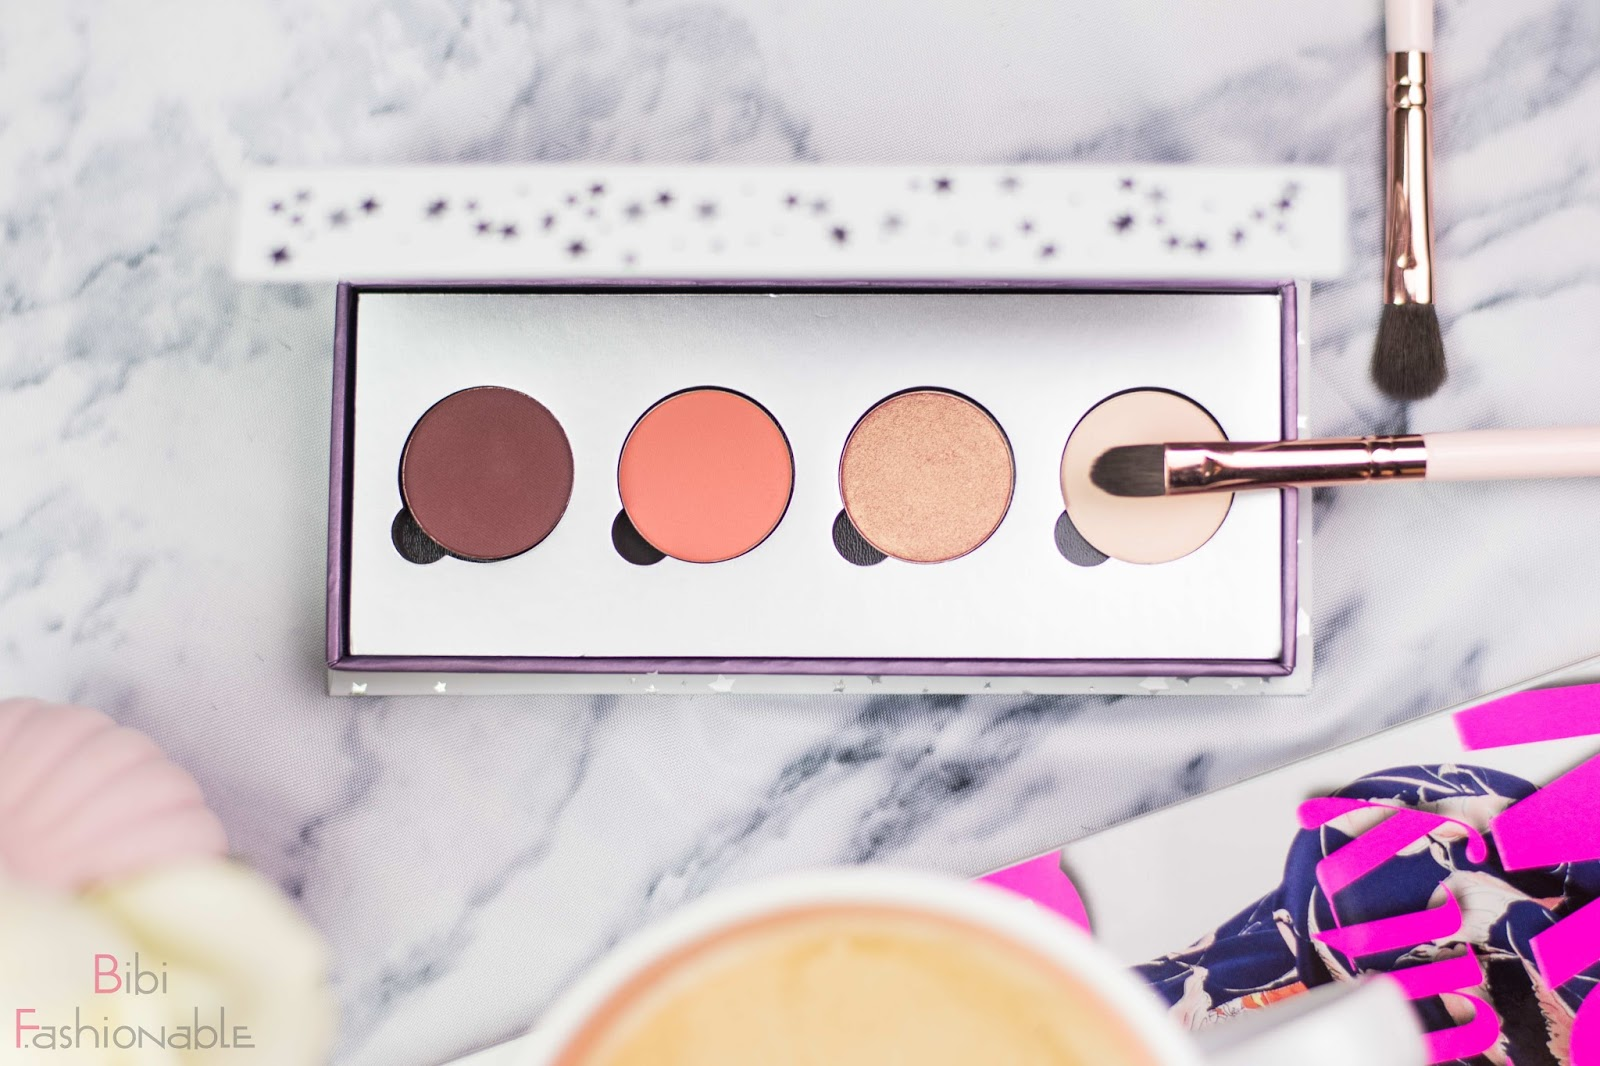 NewIn ColourPop Pressed Powder Shadows Palette